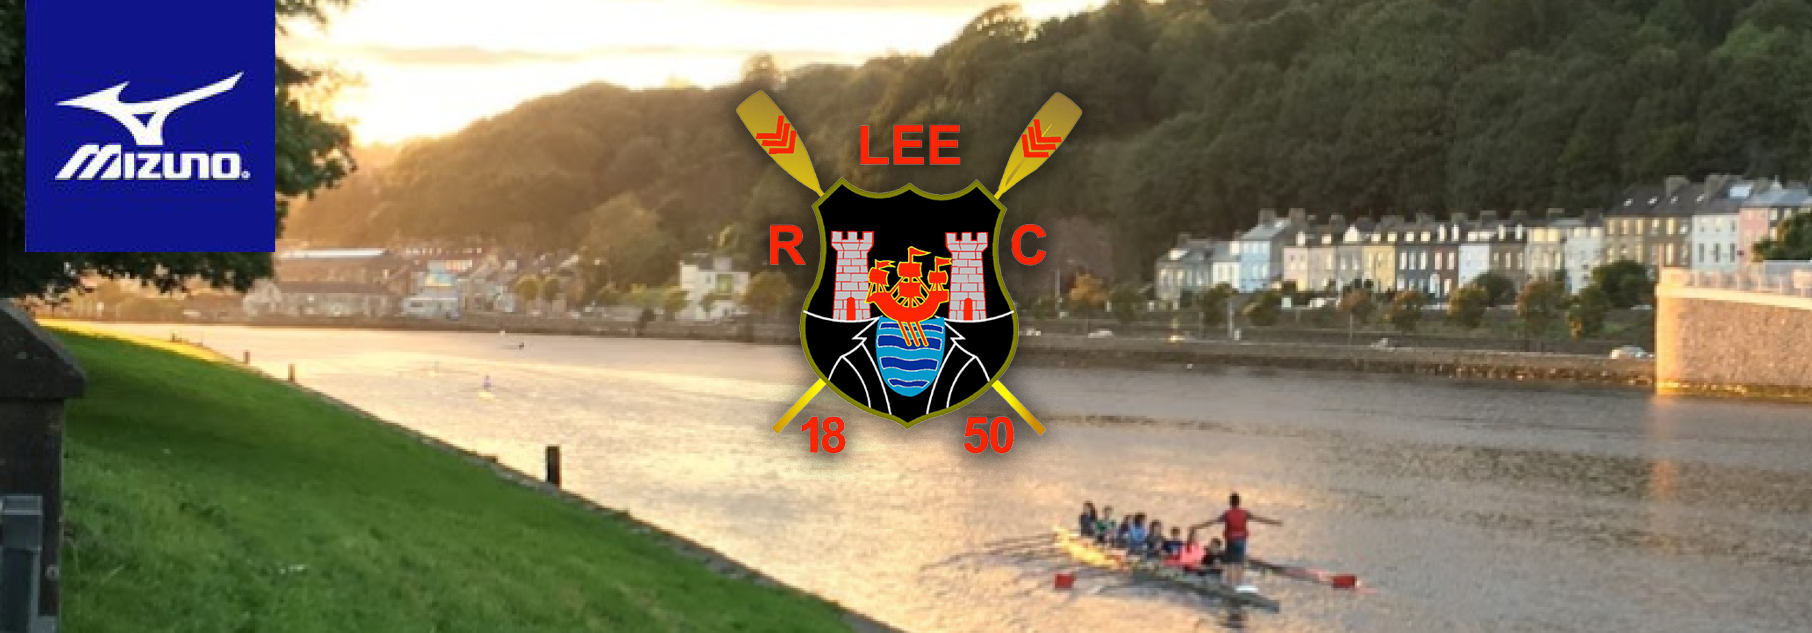 Lee Rowing Club - 1850